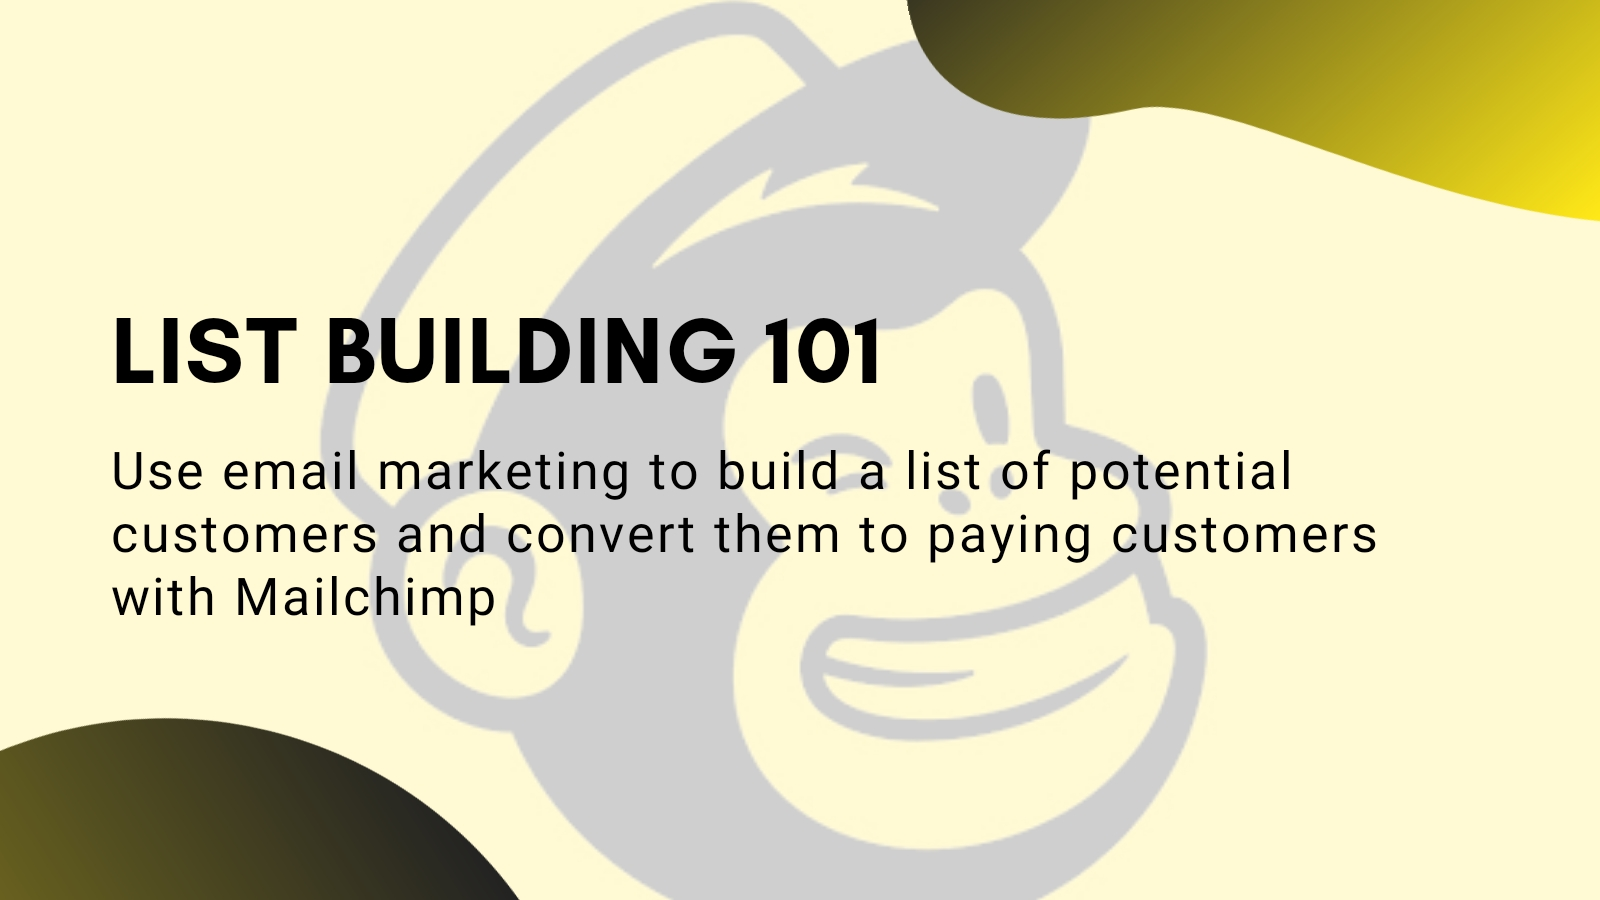 Email list building 101 (coming soon!)